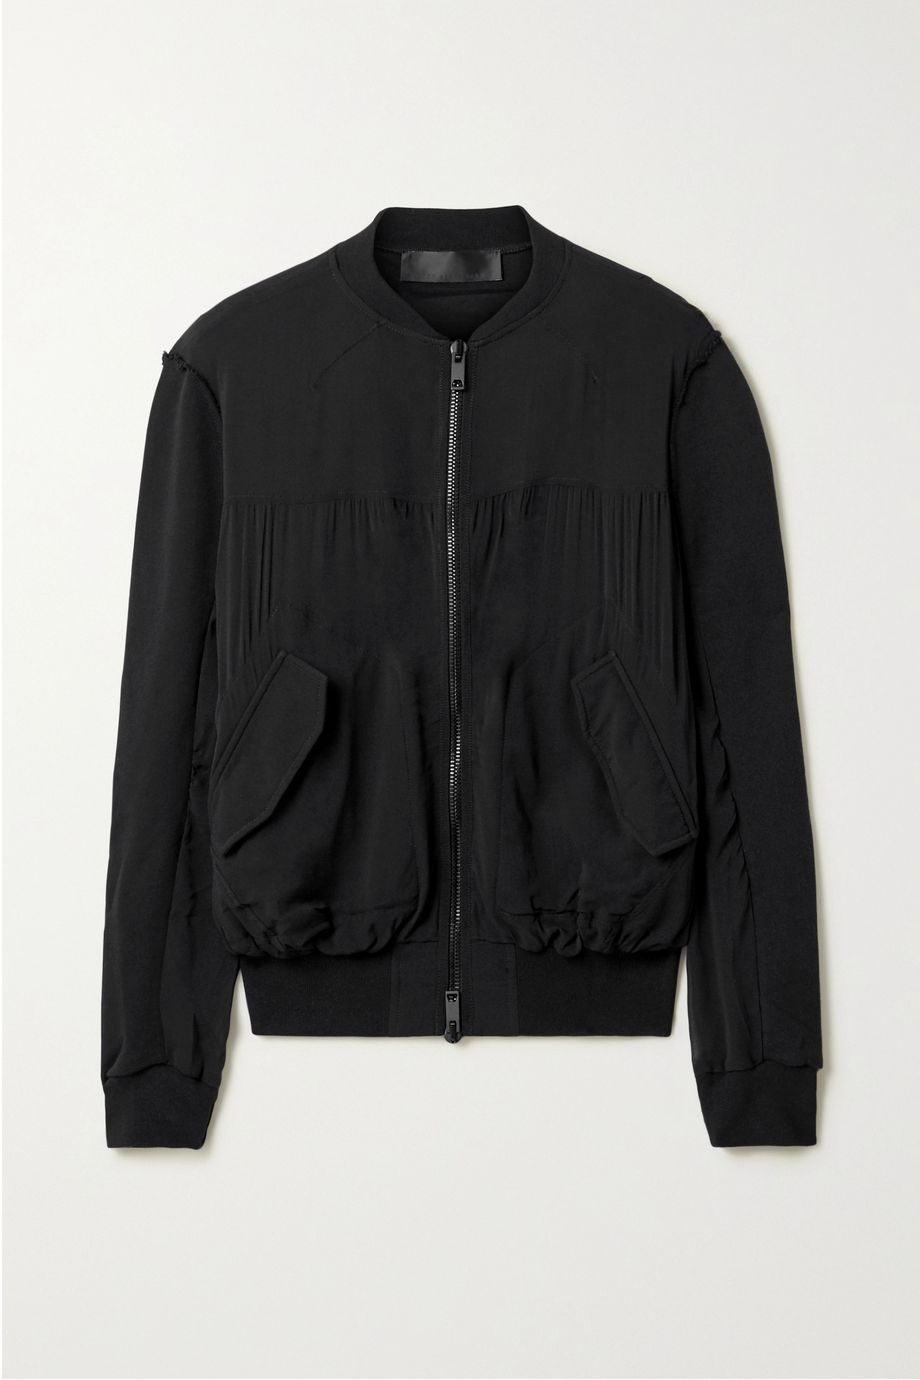 Haider Ackermann Silk-blend crepe de chine and cotton-terry bomber jacket